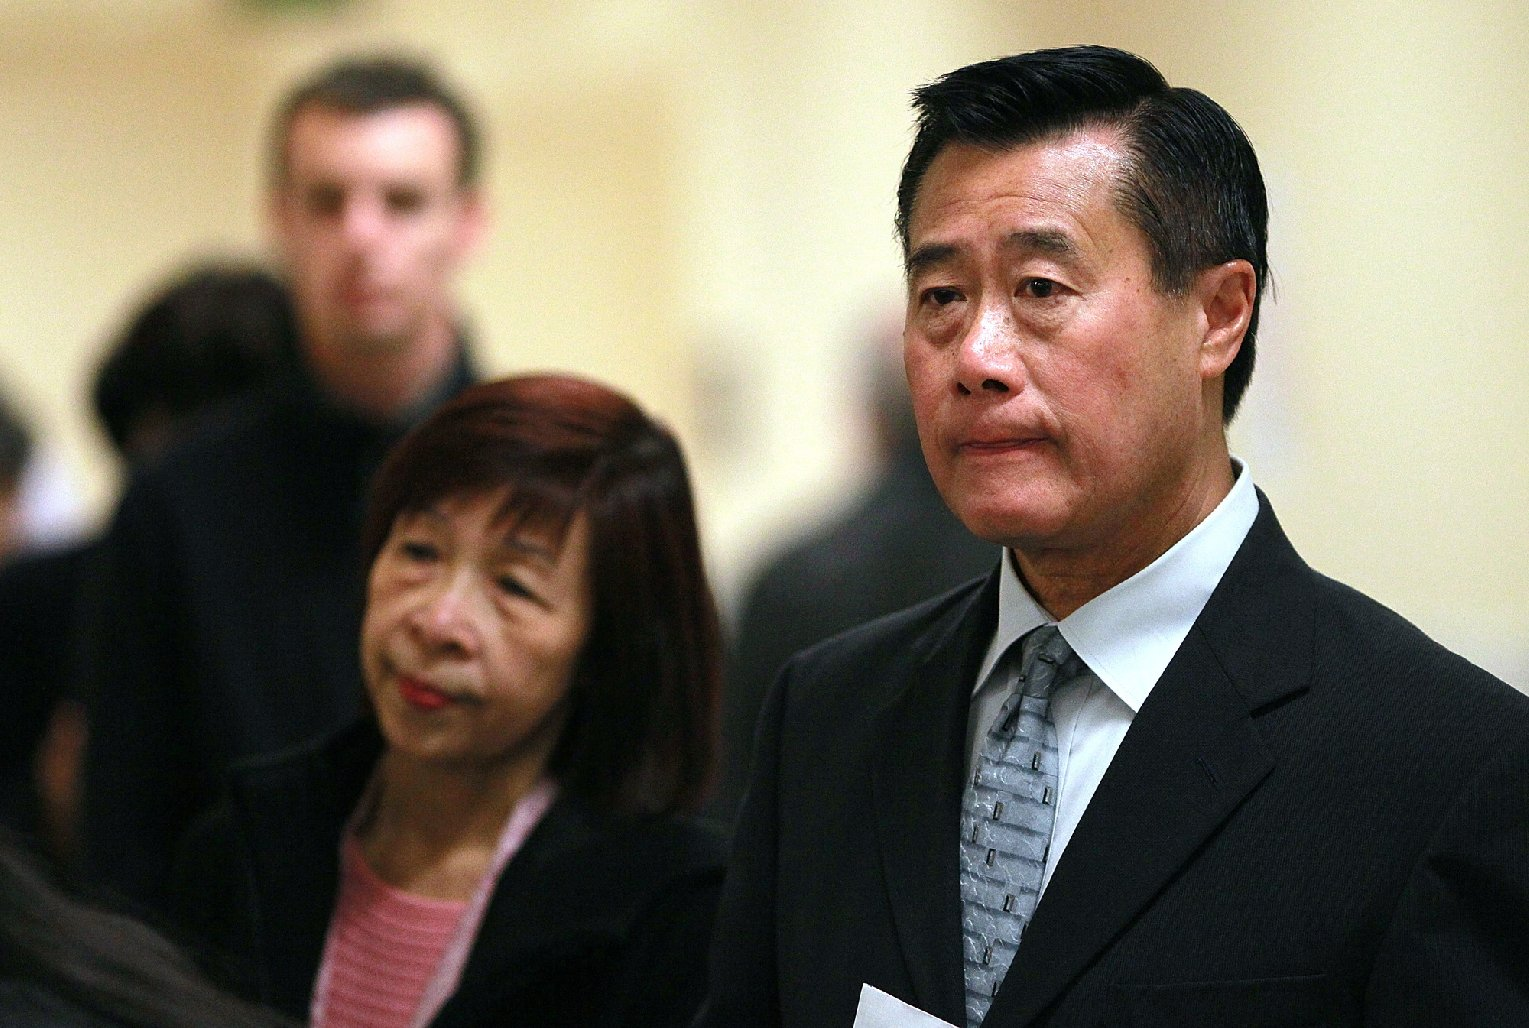 California state Sen. Leland Yee and his wife, Maxine Yee, wait to cast their ballots in San Francisco in November 2011. (Justin Sullivan/Getty Images)